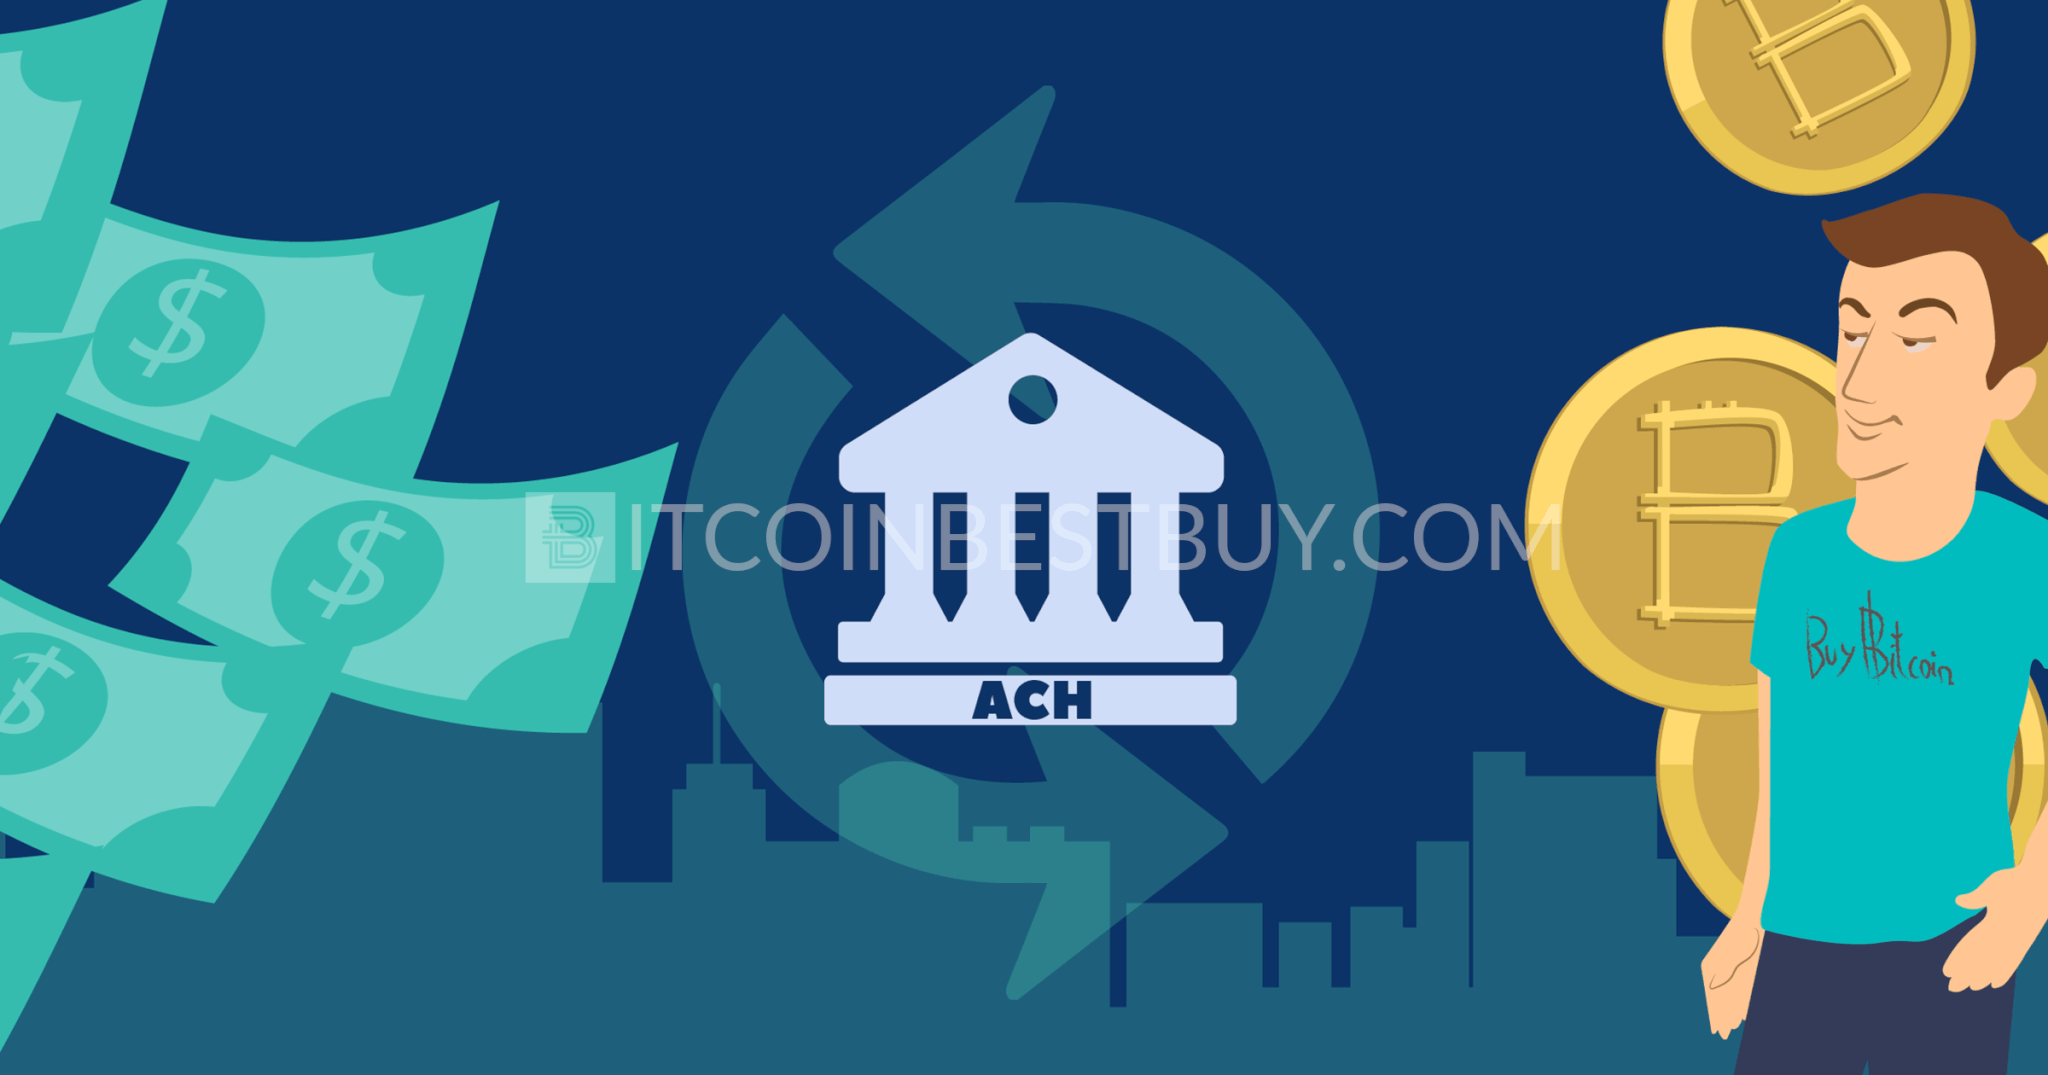 Buy bitcoin with ach instantly money